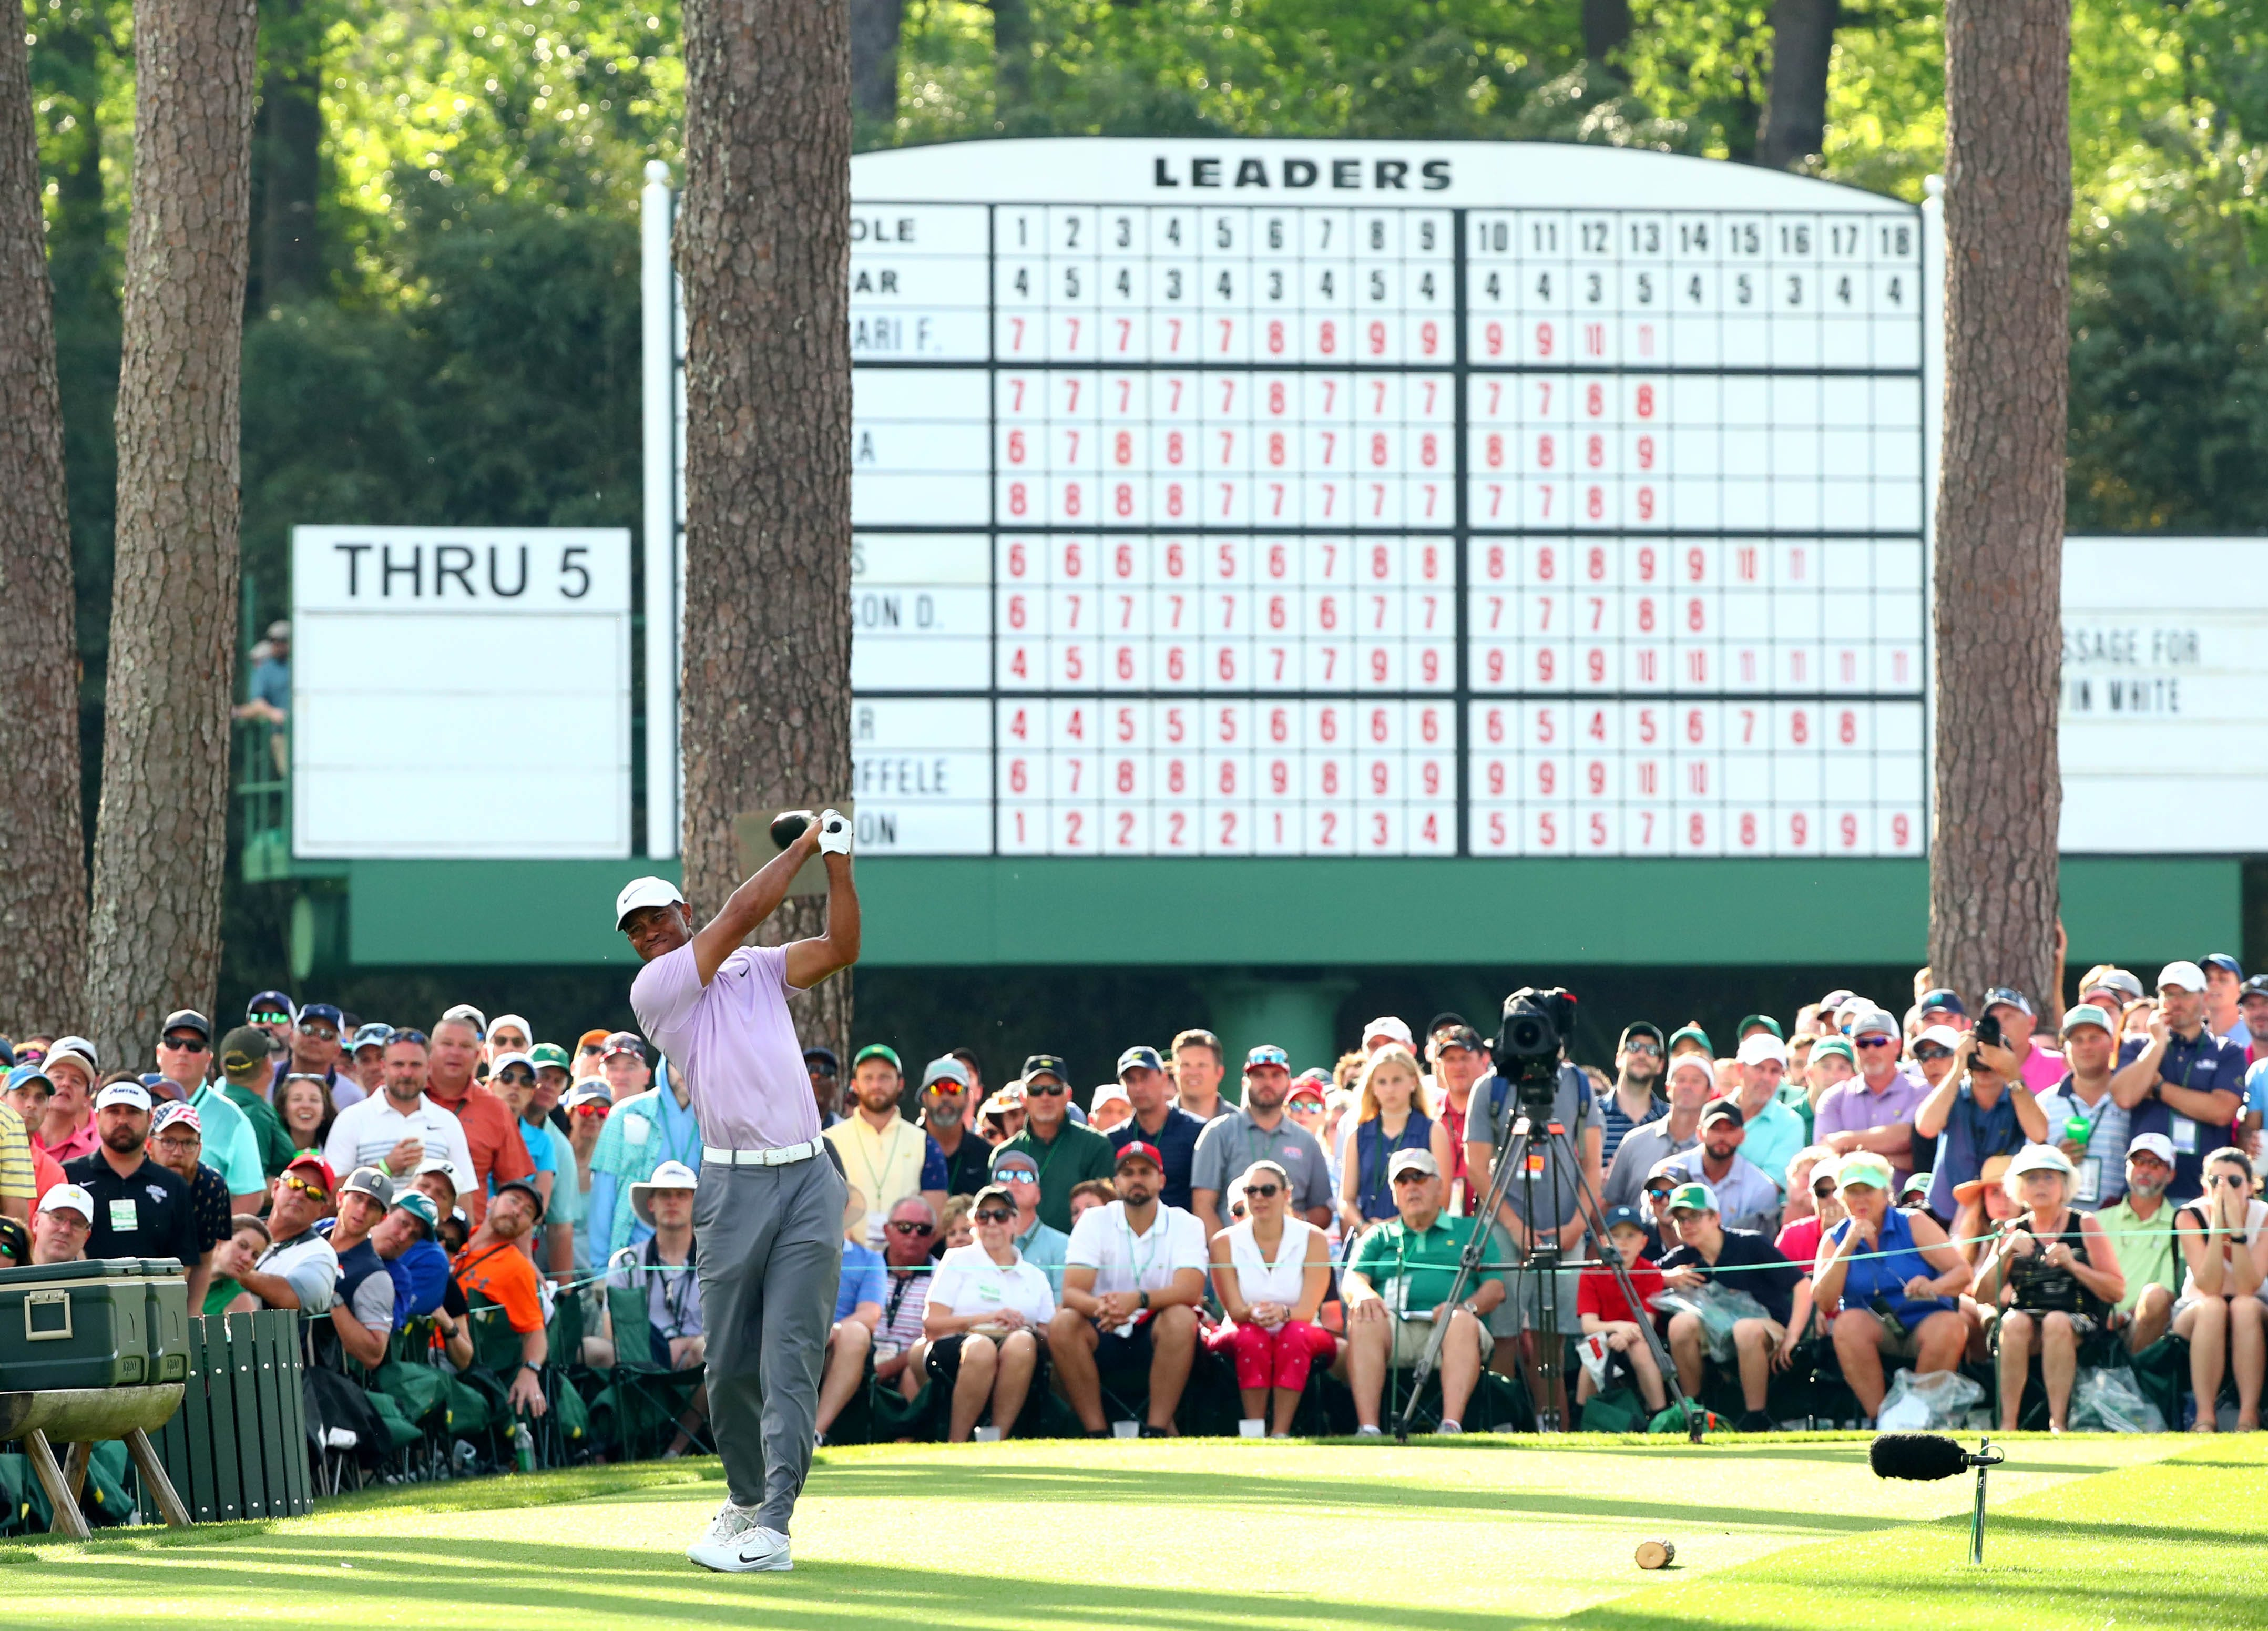 Who will win the Masters? Here are the win probabilities for Tiger Woods, other contenders